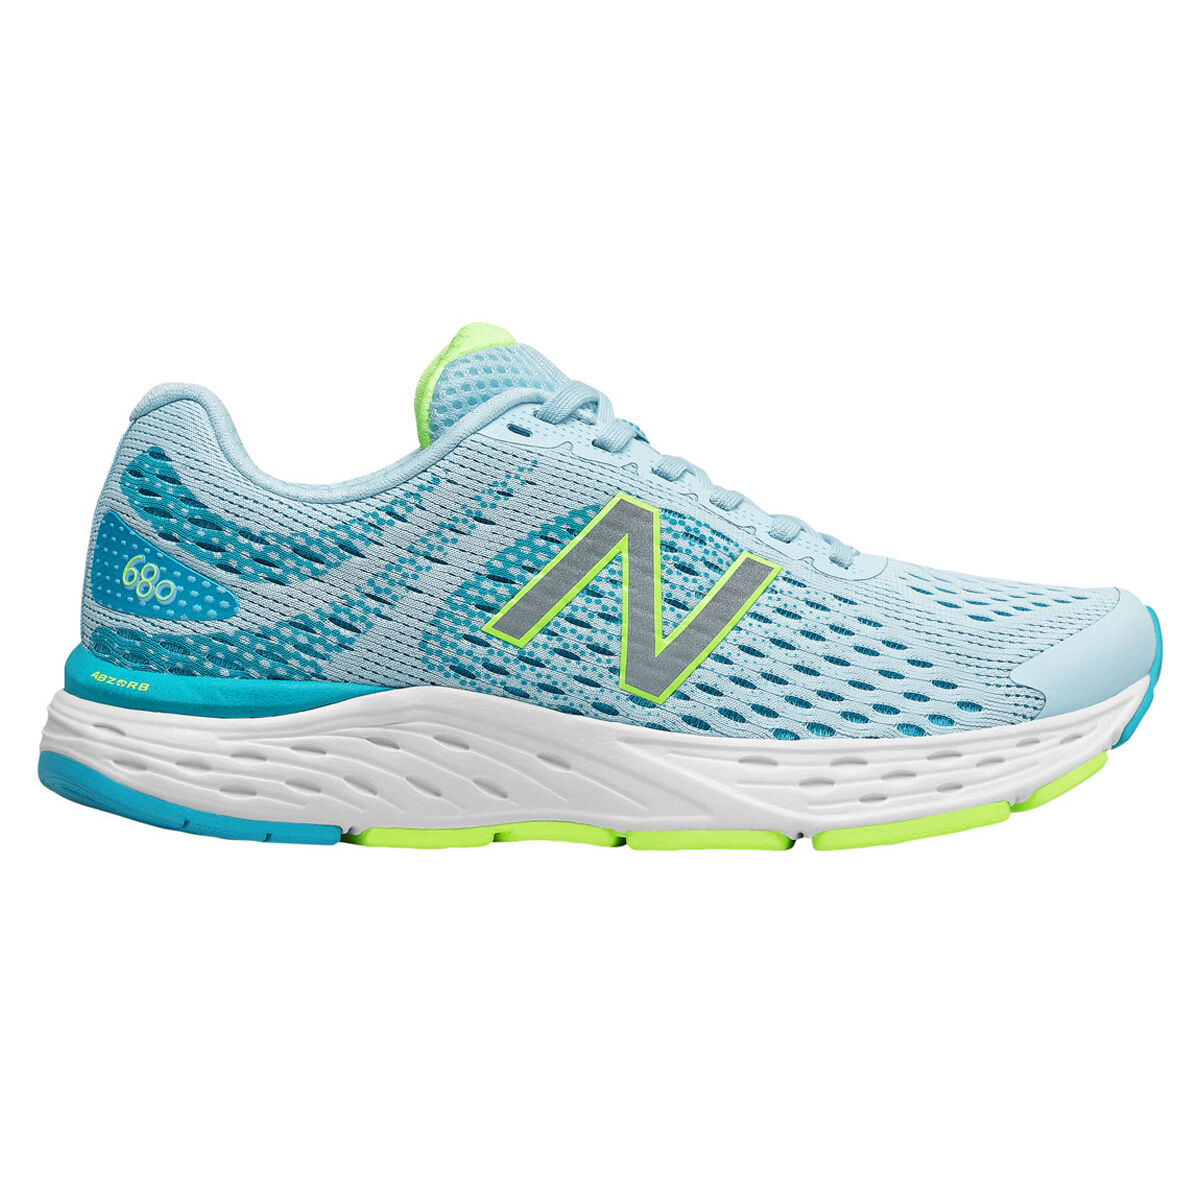 New Balance 680 Womens Running Shoes | Thesommelierchef Sport